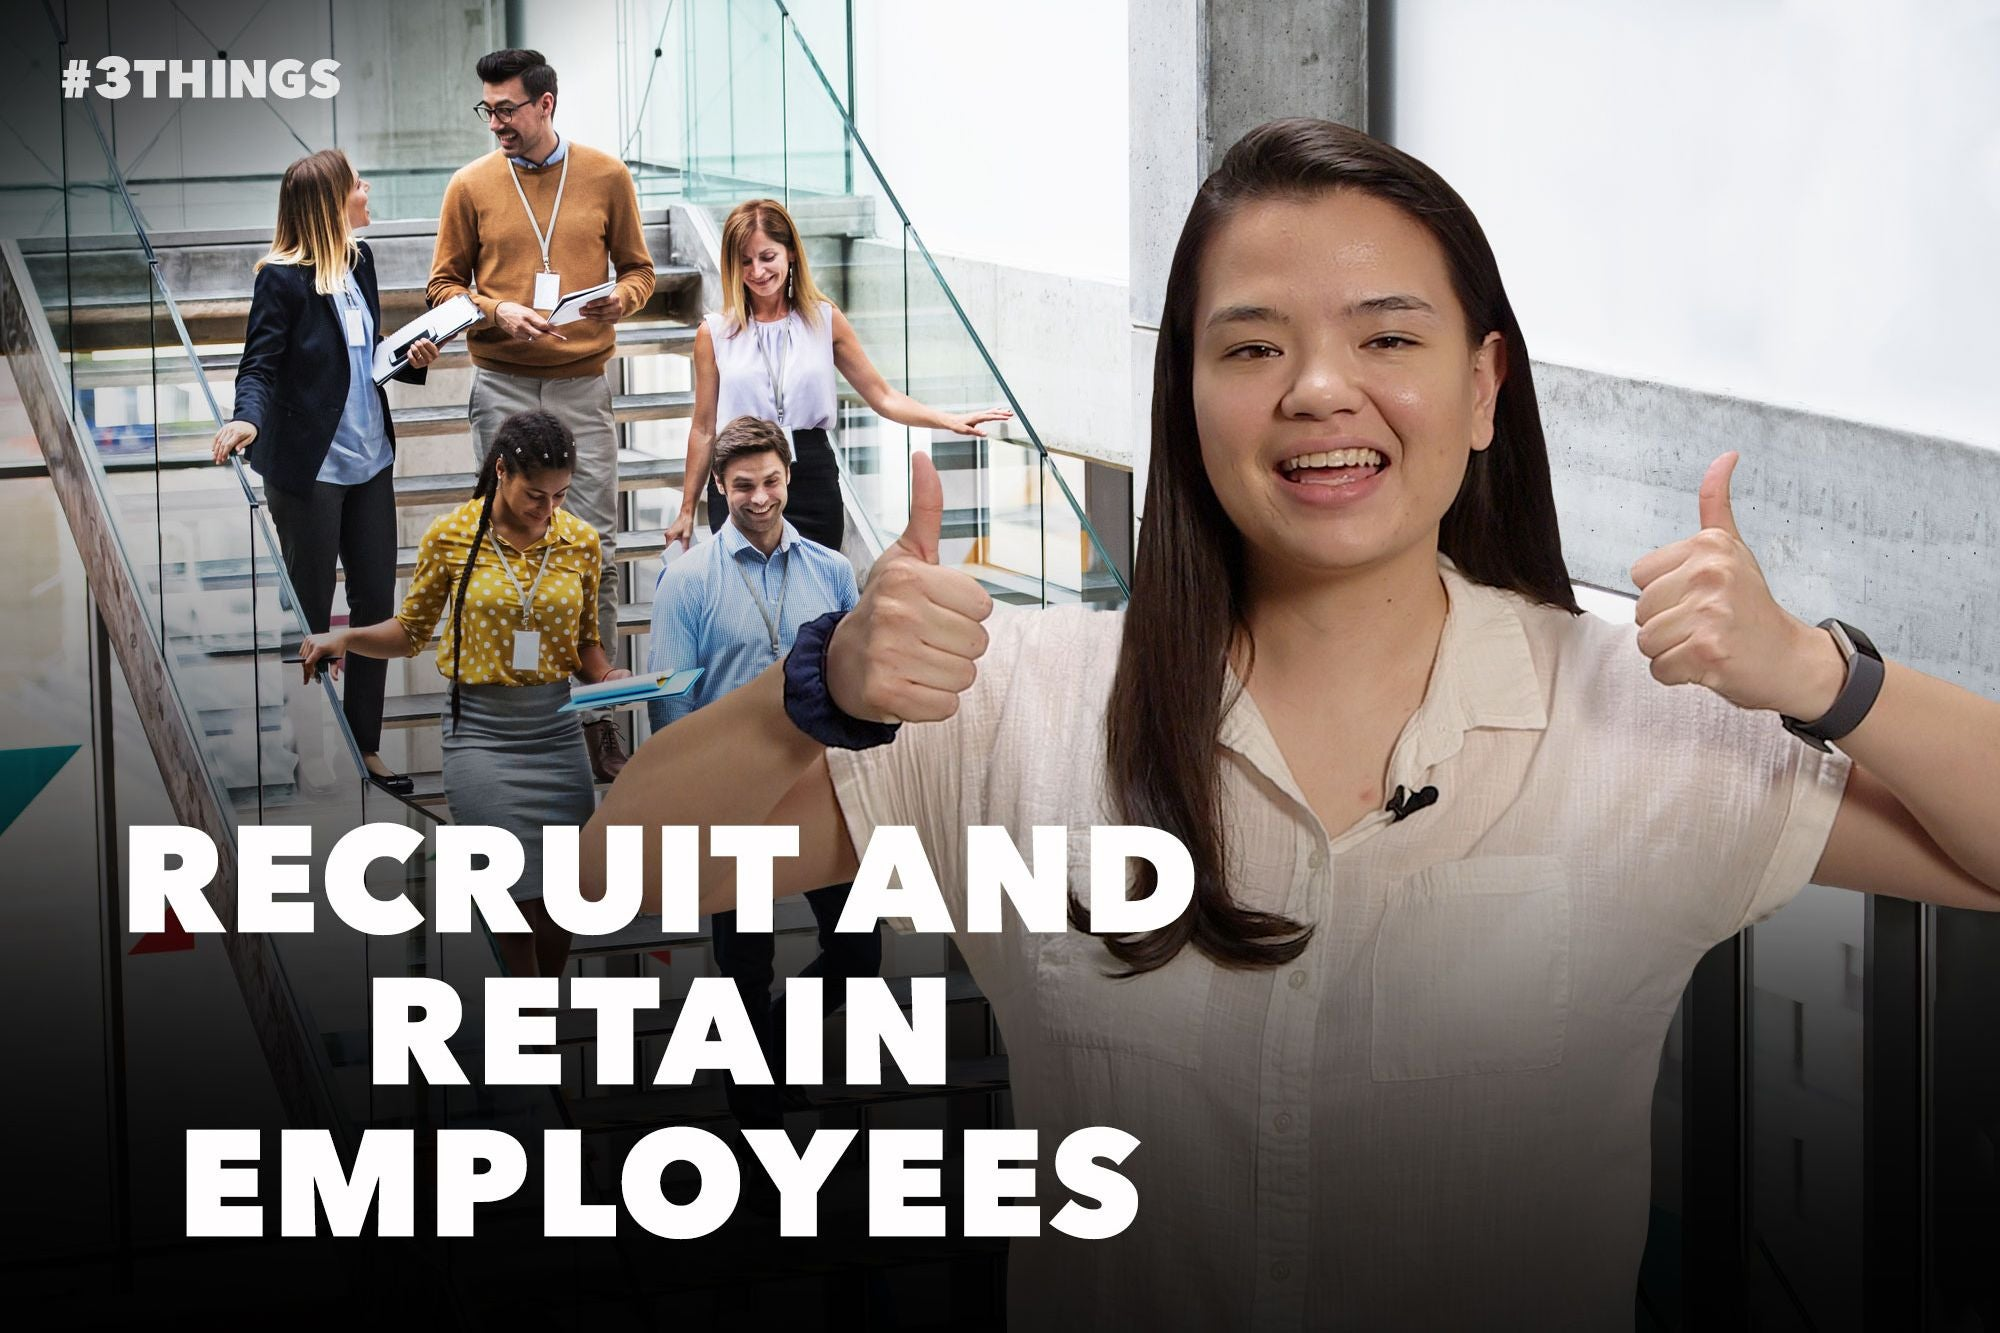 Follow These Strategies to Recruit and Retain Employees